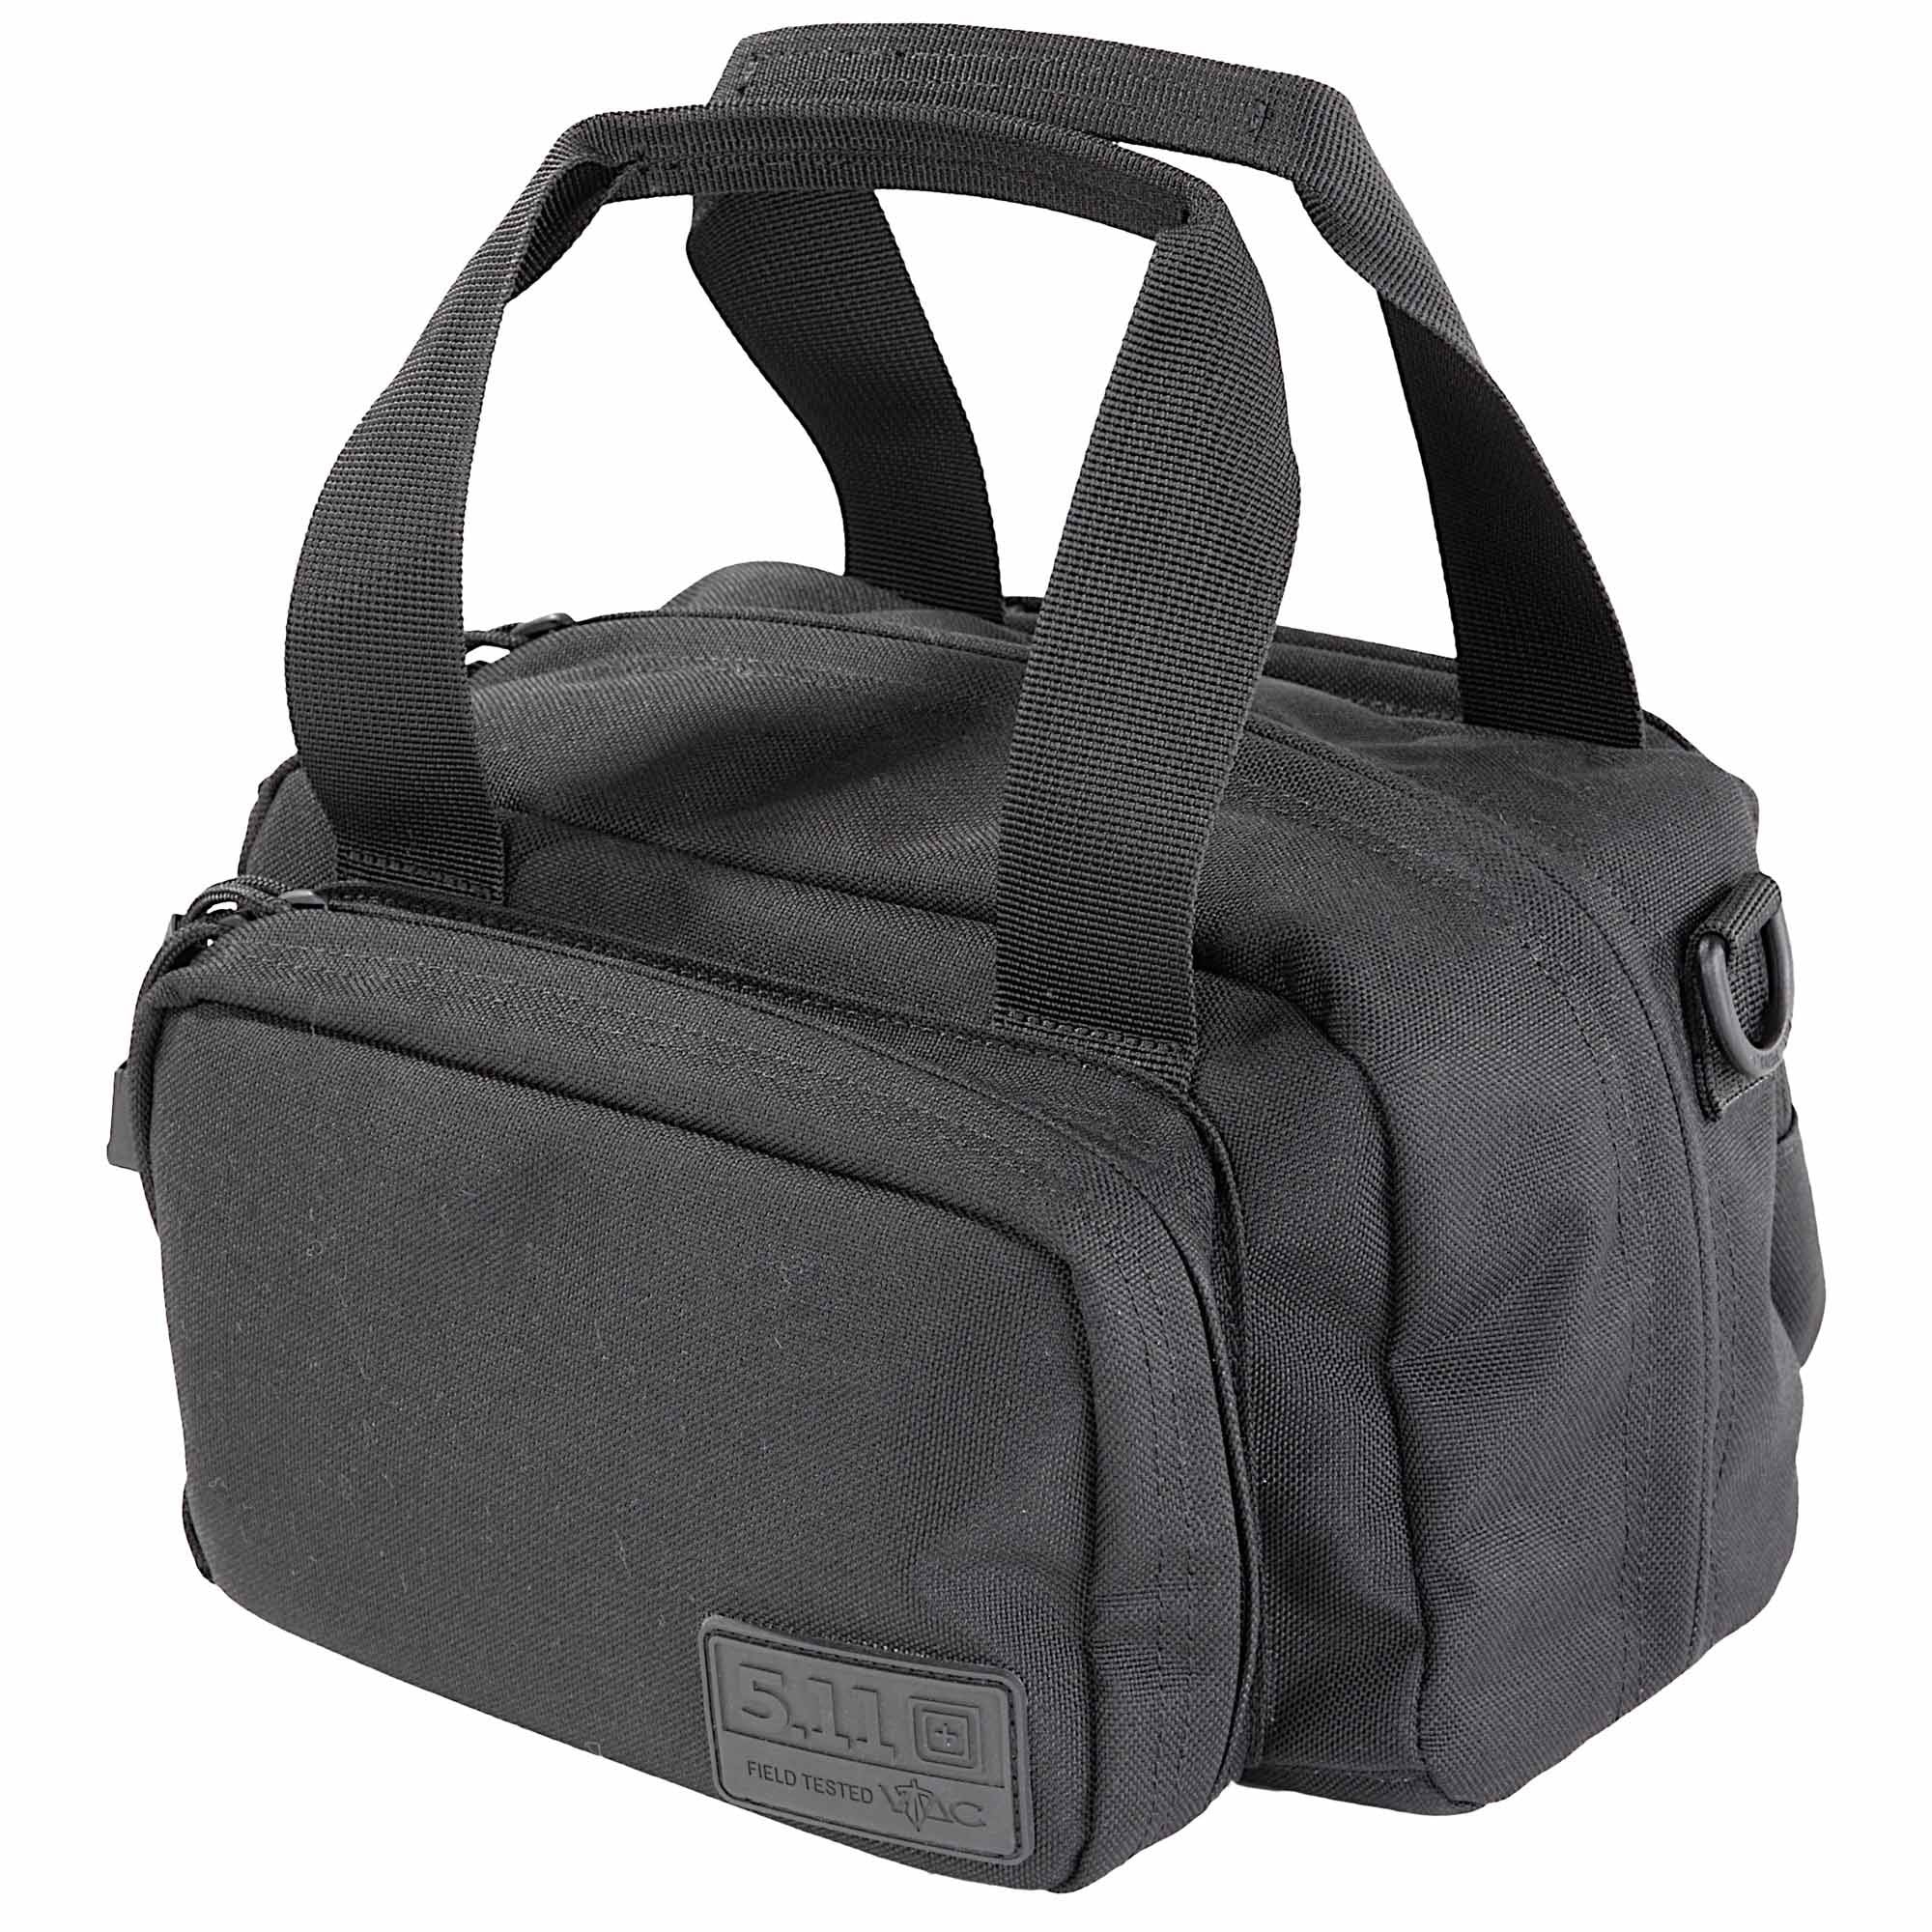 58725 Small Kit Tool Bag